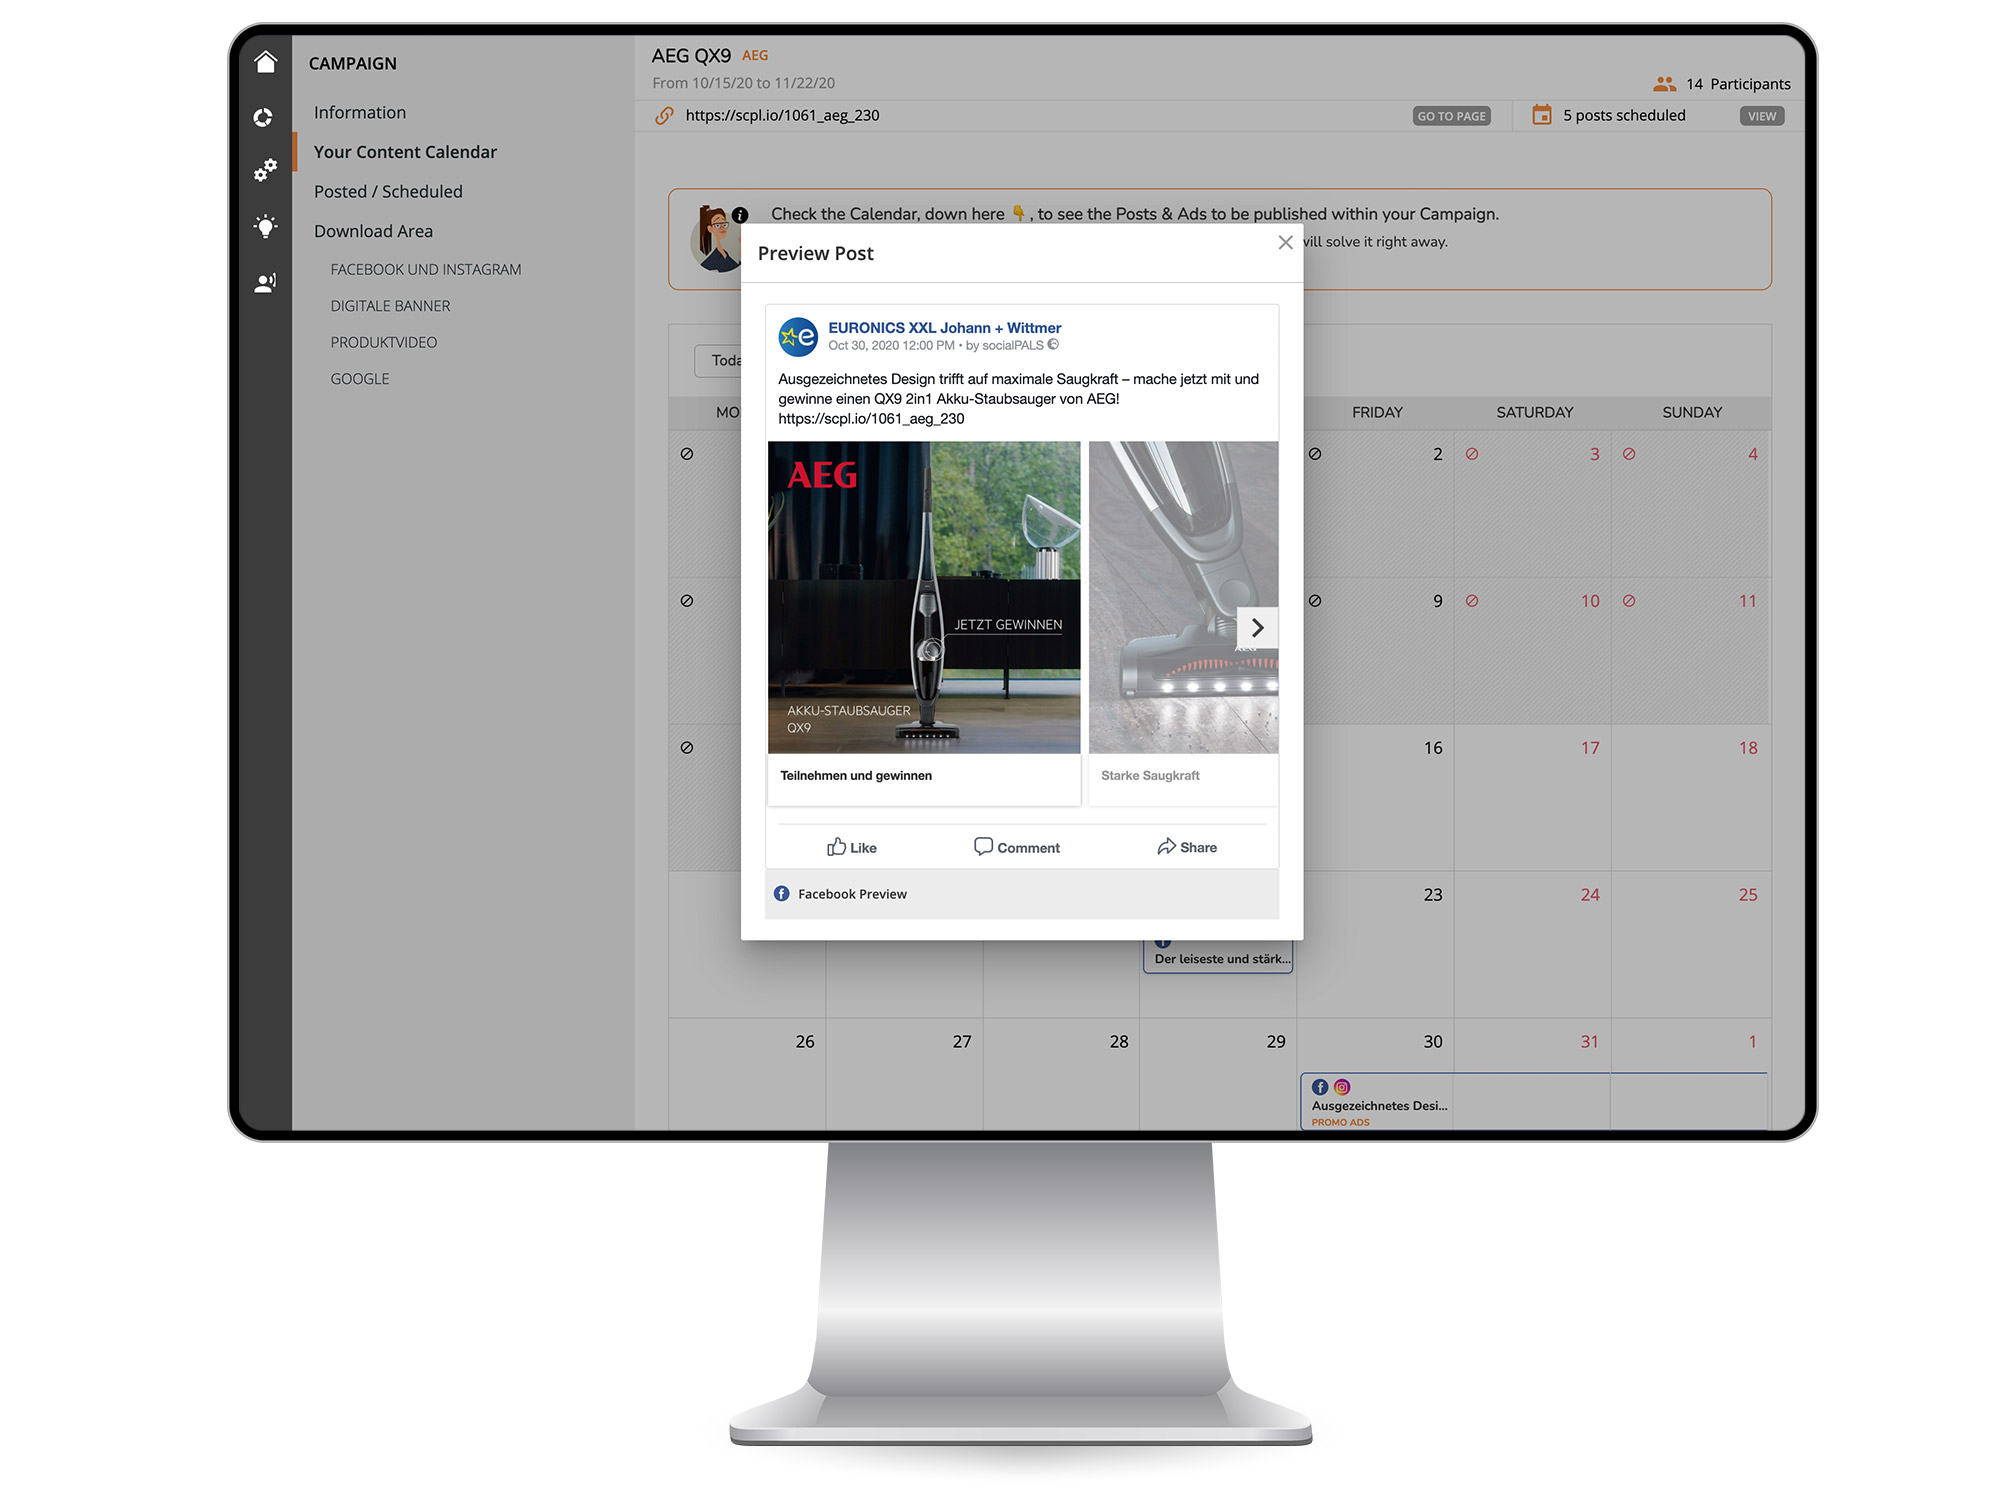 With the content calendar, each campaign can be customized in no time